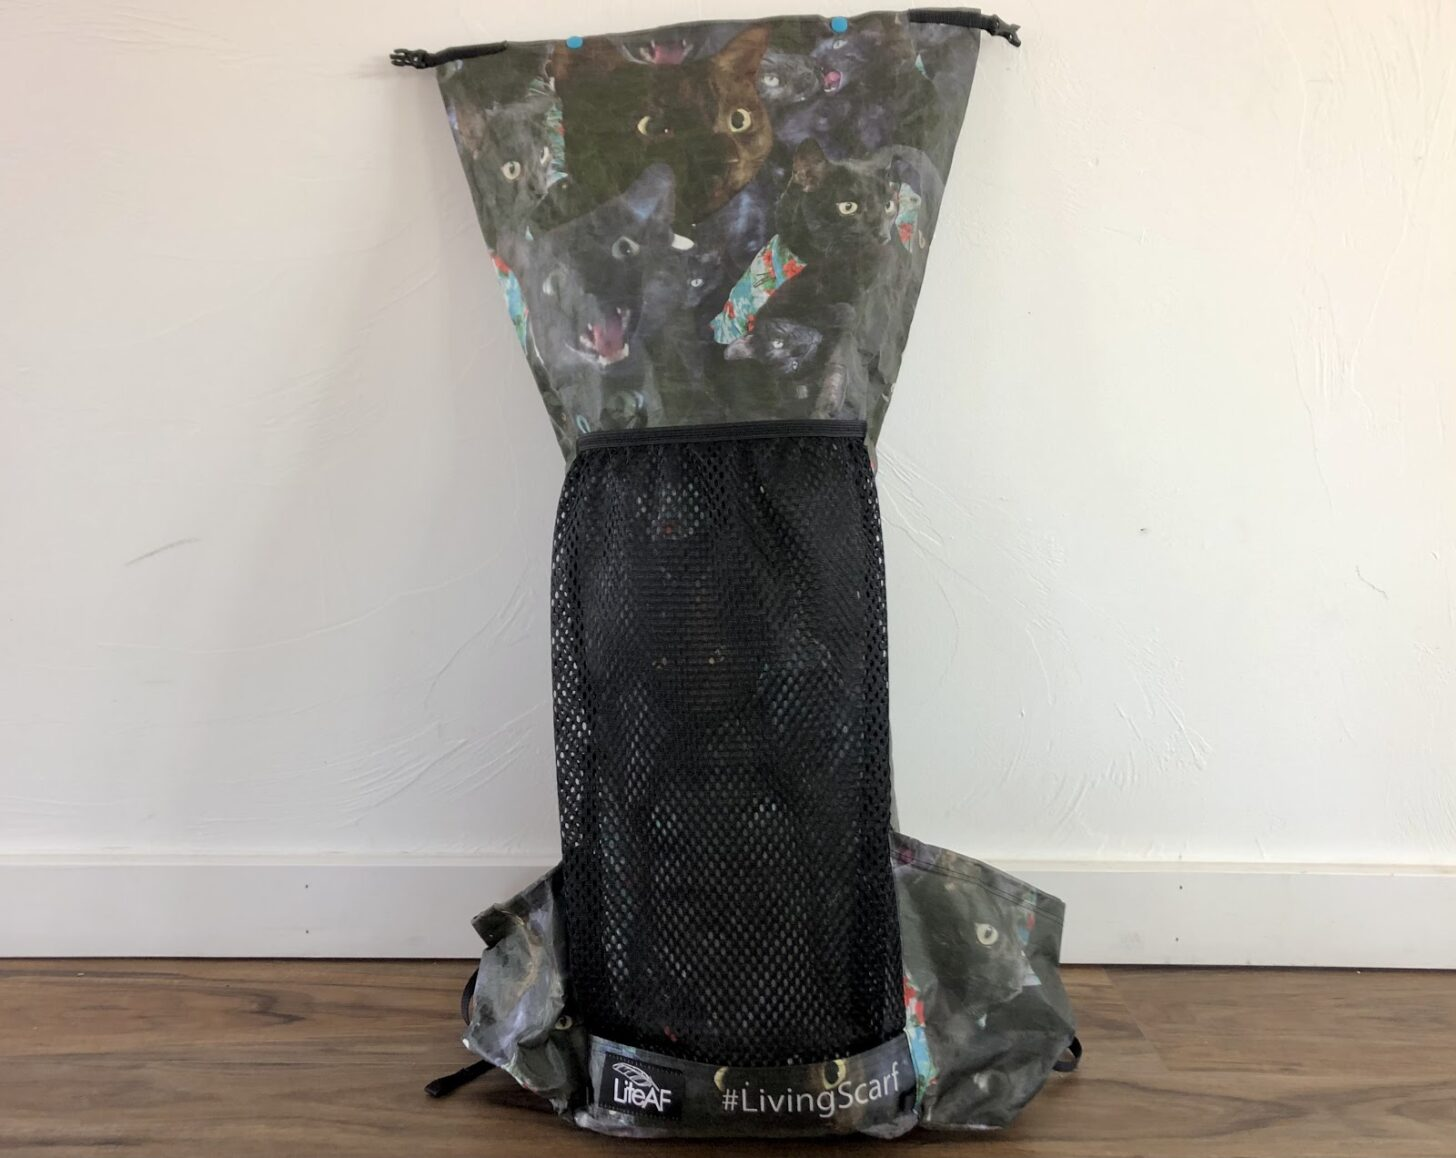 a backpack with a collage of cat faces printed on it.